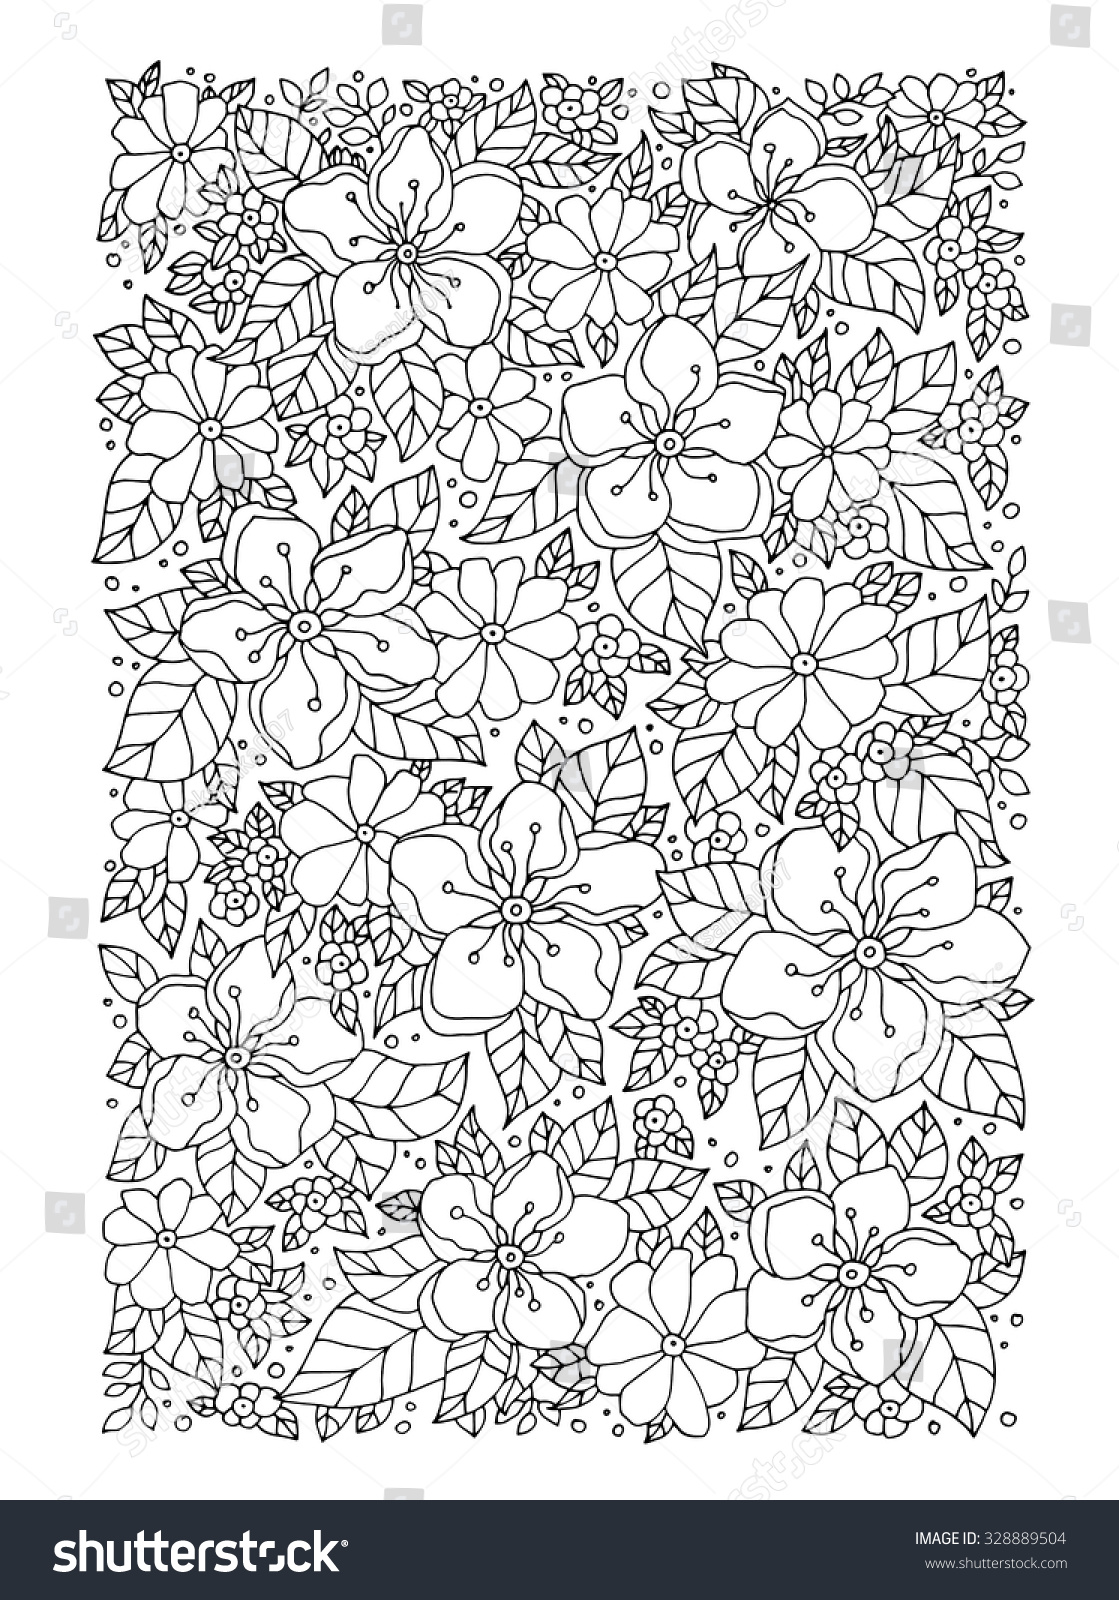 Coloring book page apple tree - Forest Apple Tree Flowers Vector Artwork Love Bohemia Concept For Wedding Invitation Card